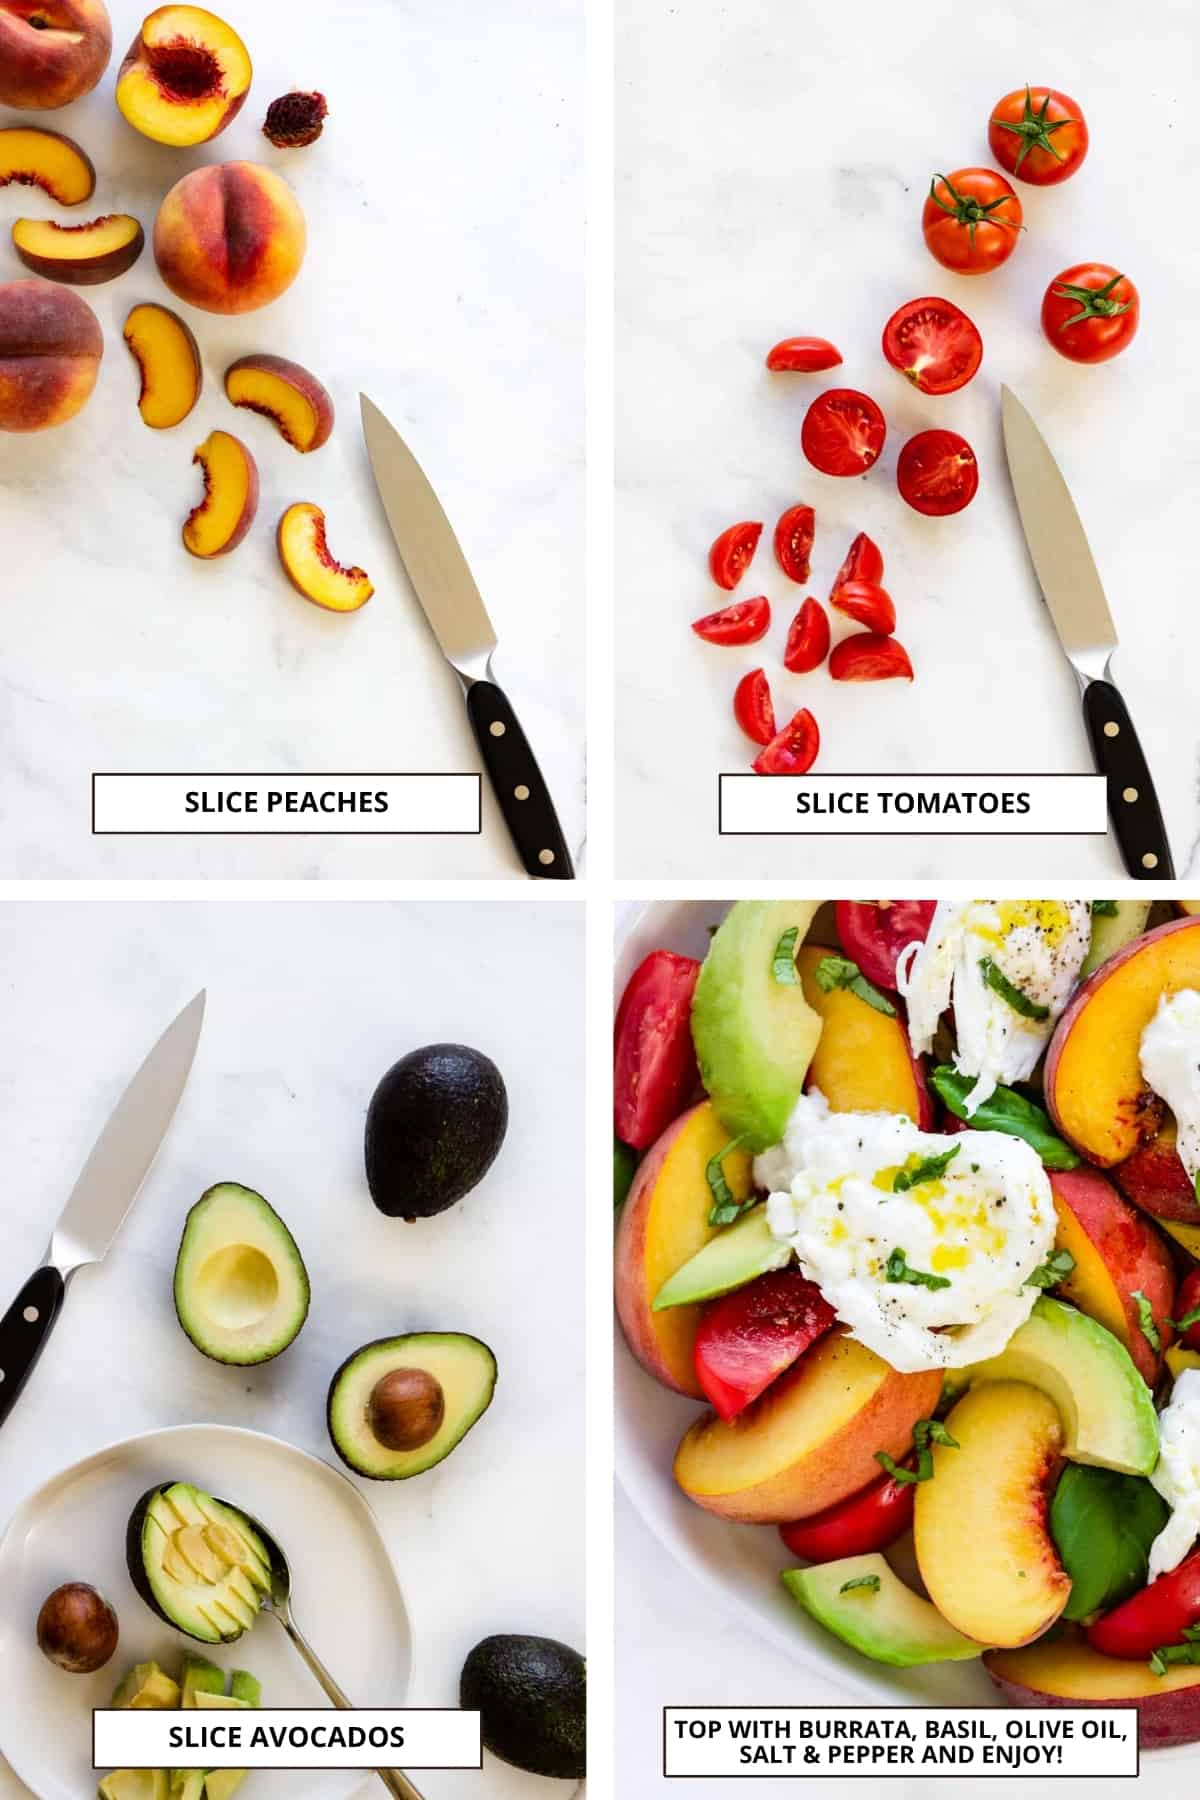 Process shots: Slice peaches; slice tomatoes; pit and slice avocadoes; top the salad with burrata, fresh basil, olive oil, salt & pepper.